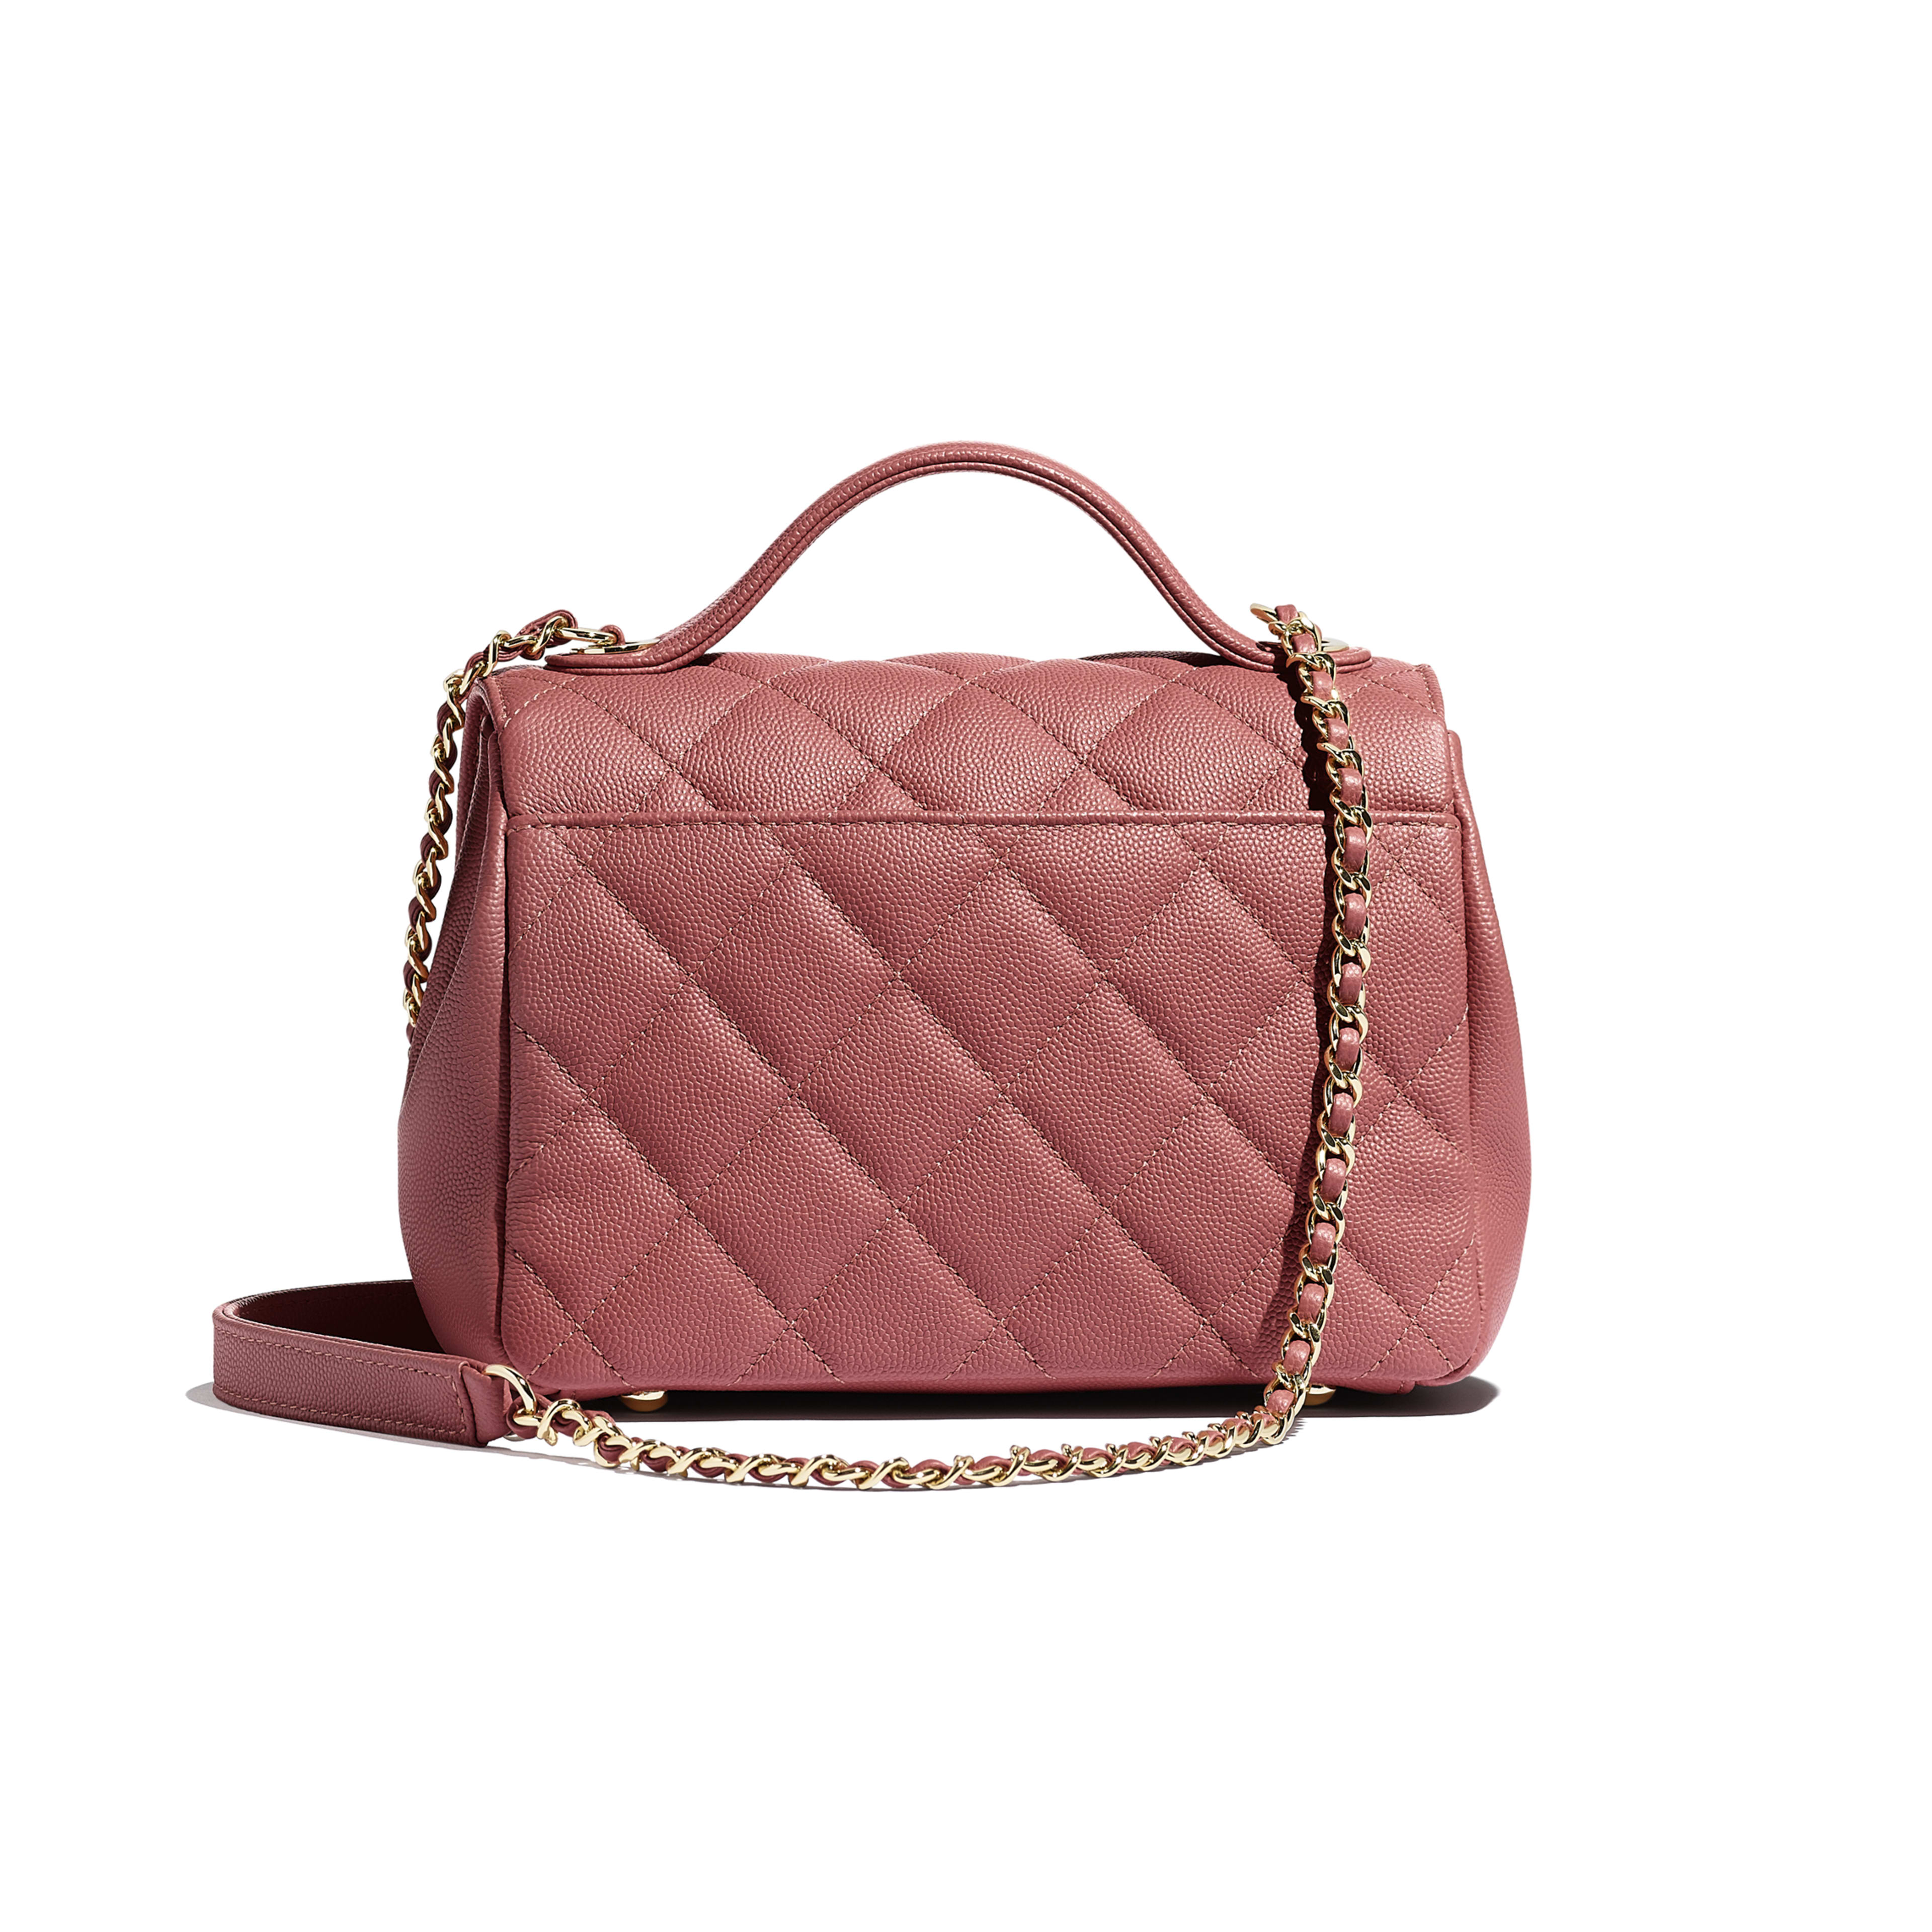 Flap Bag with Top Handle - Pink - Grained Calfskin & Gold-Tone Metal - Alternative view - see full sized version